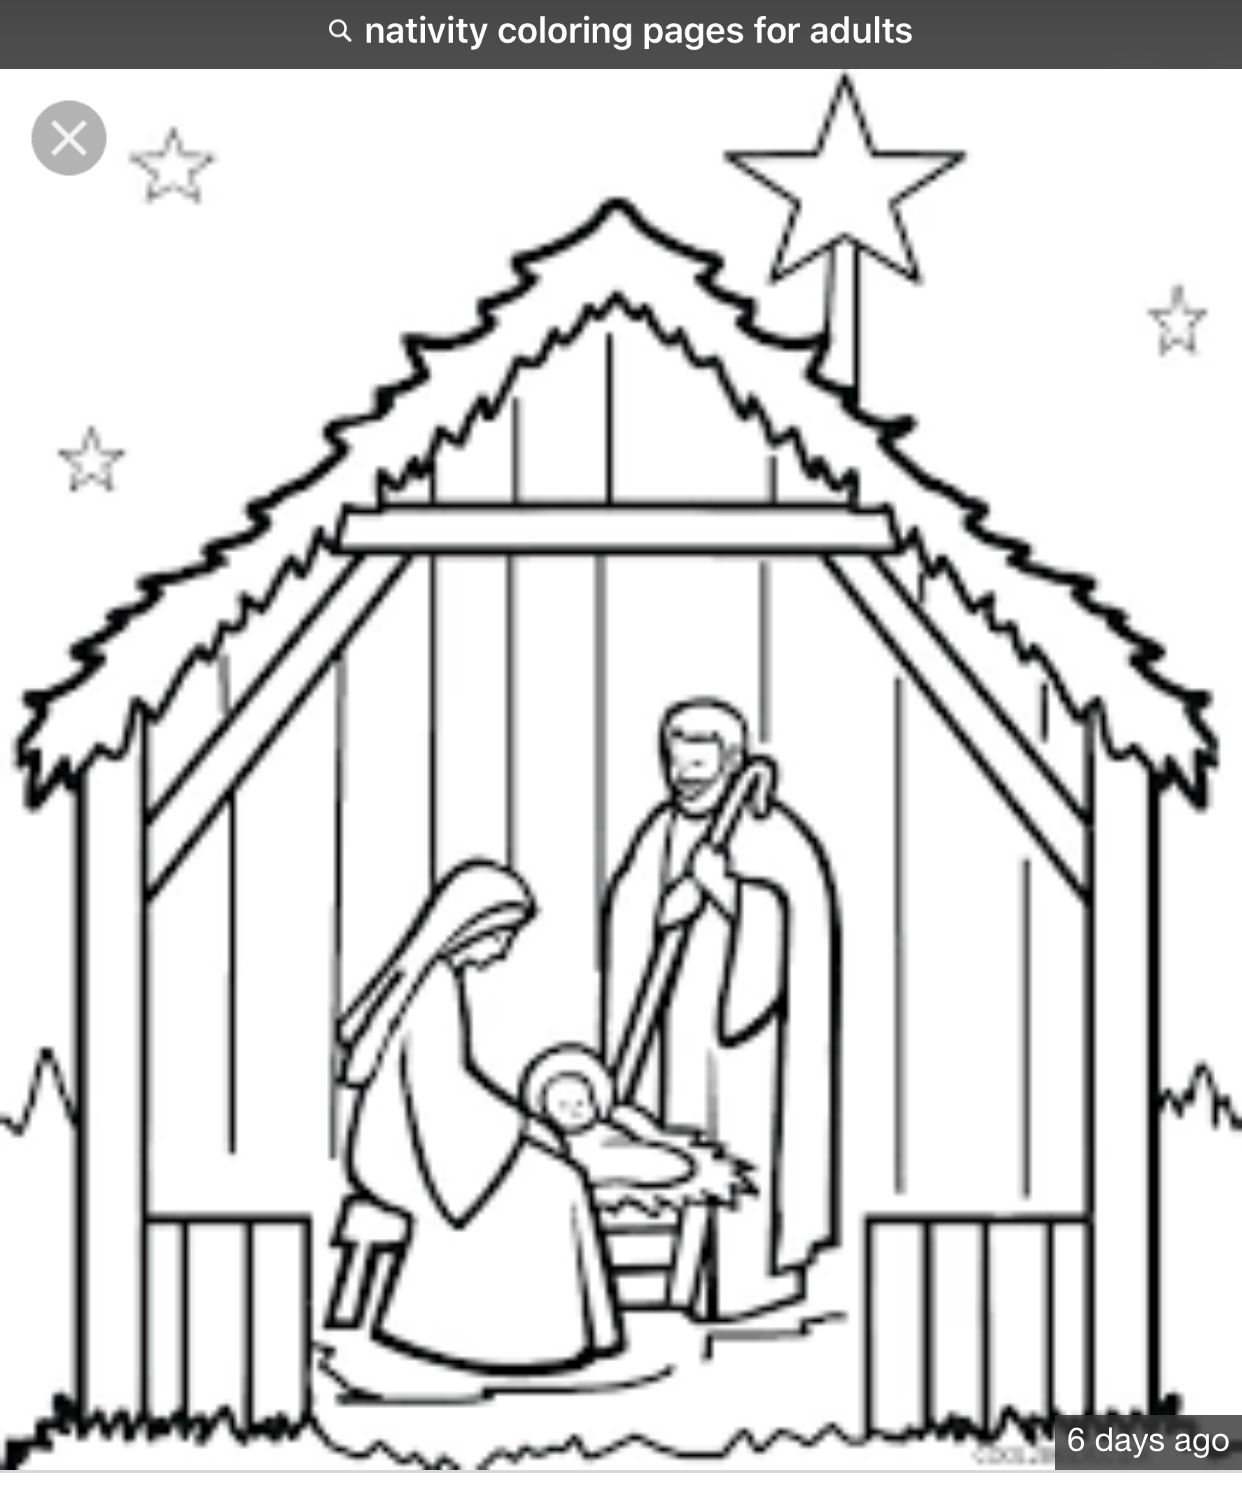 Pin By Linda Bell On Rock Art Nativity Coloring Pages Nativity